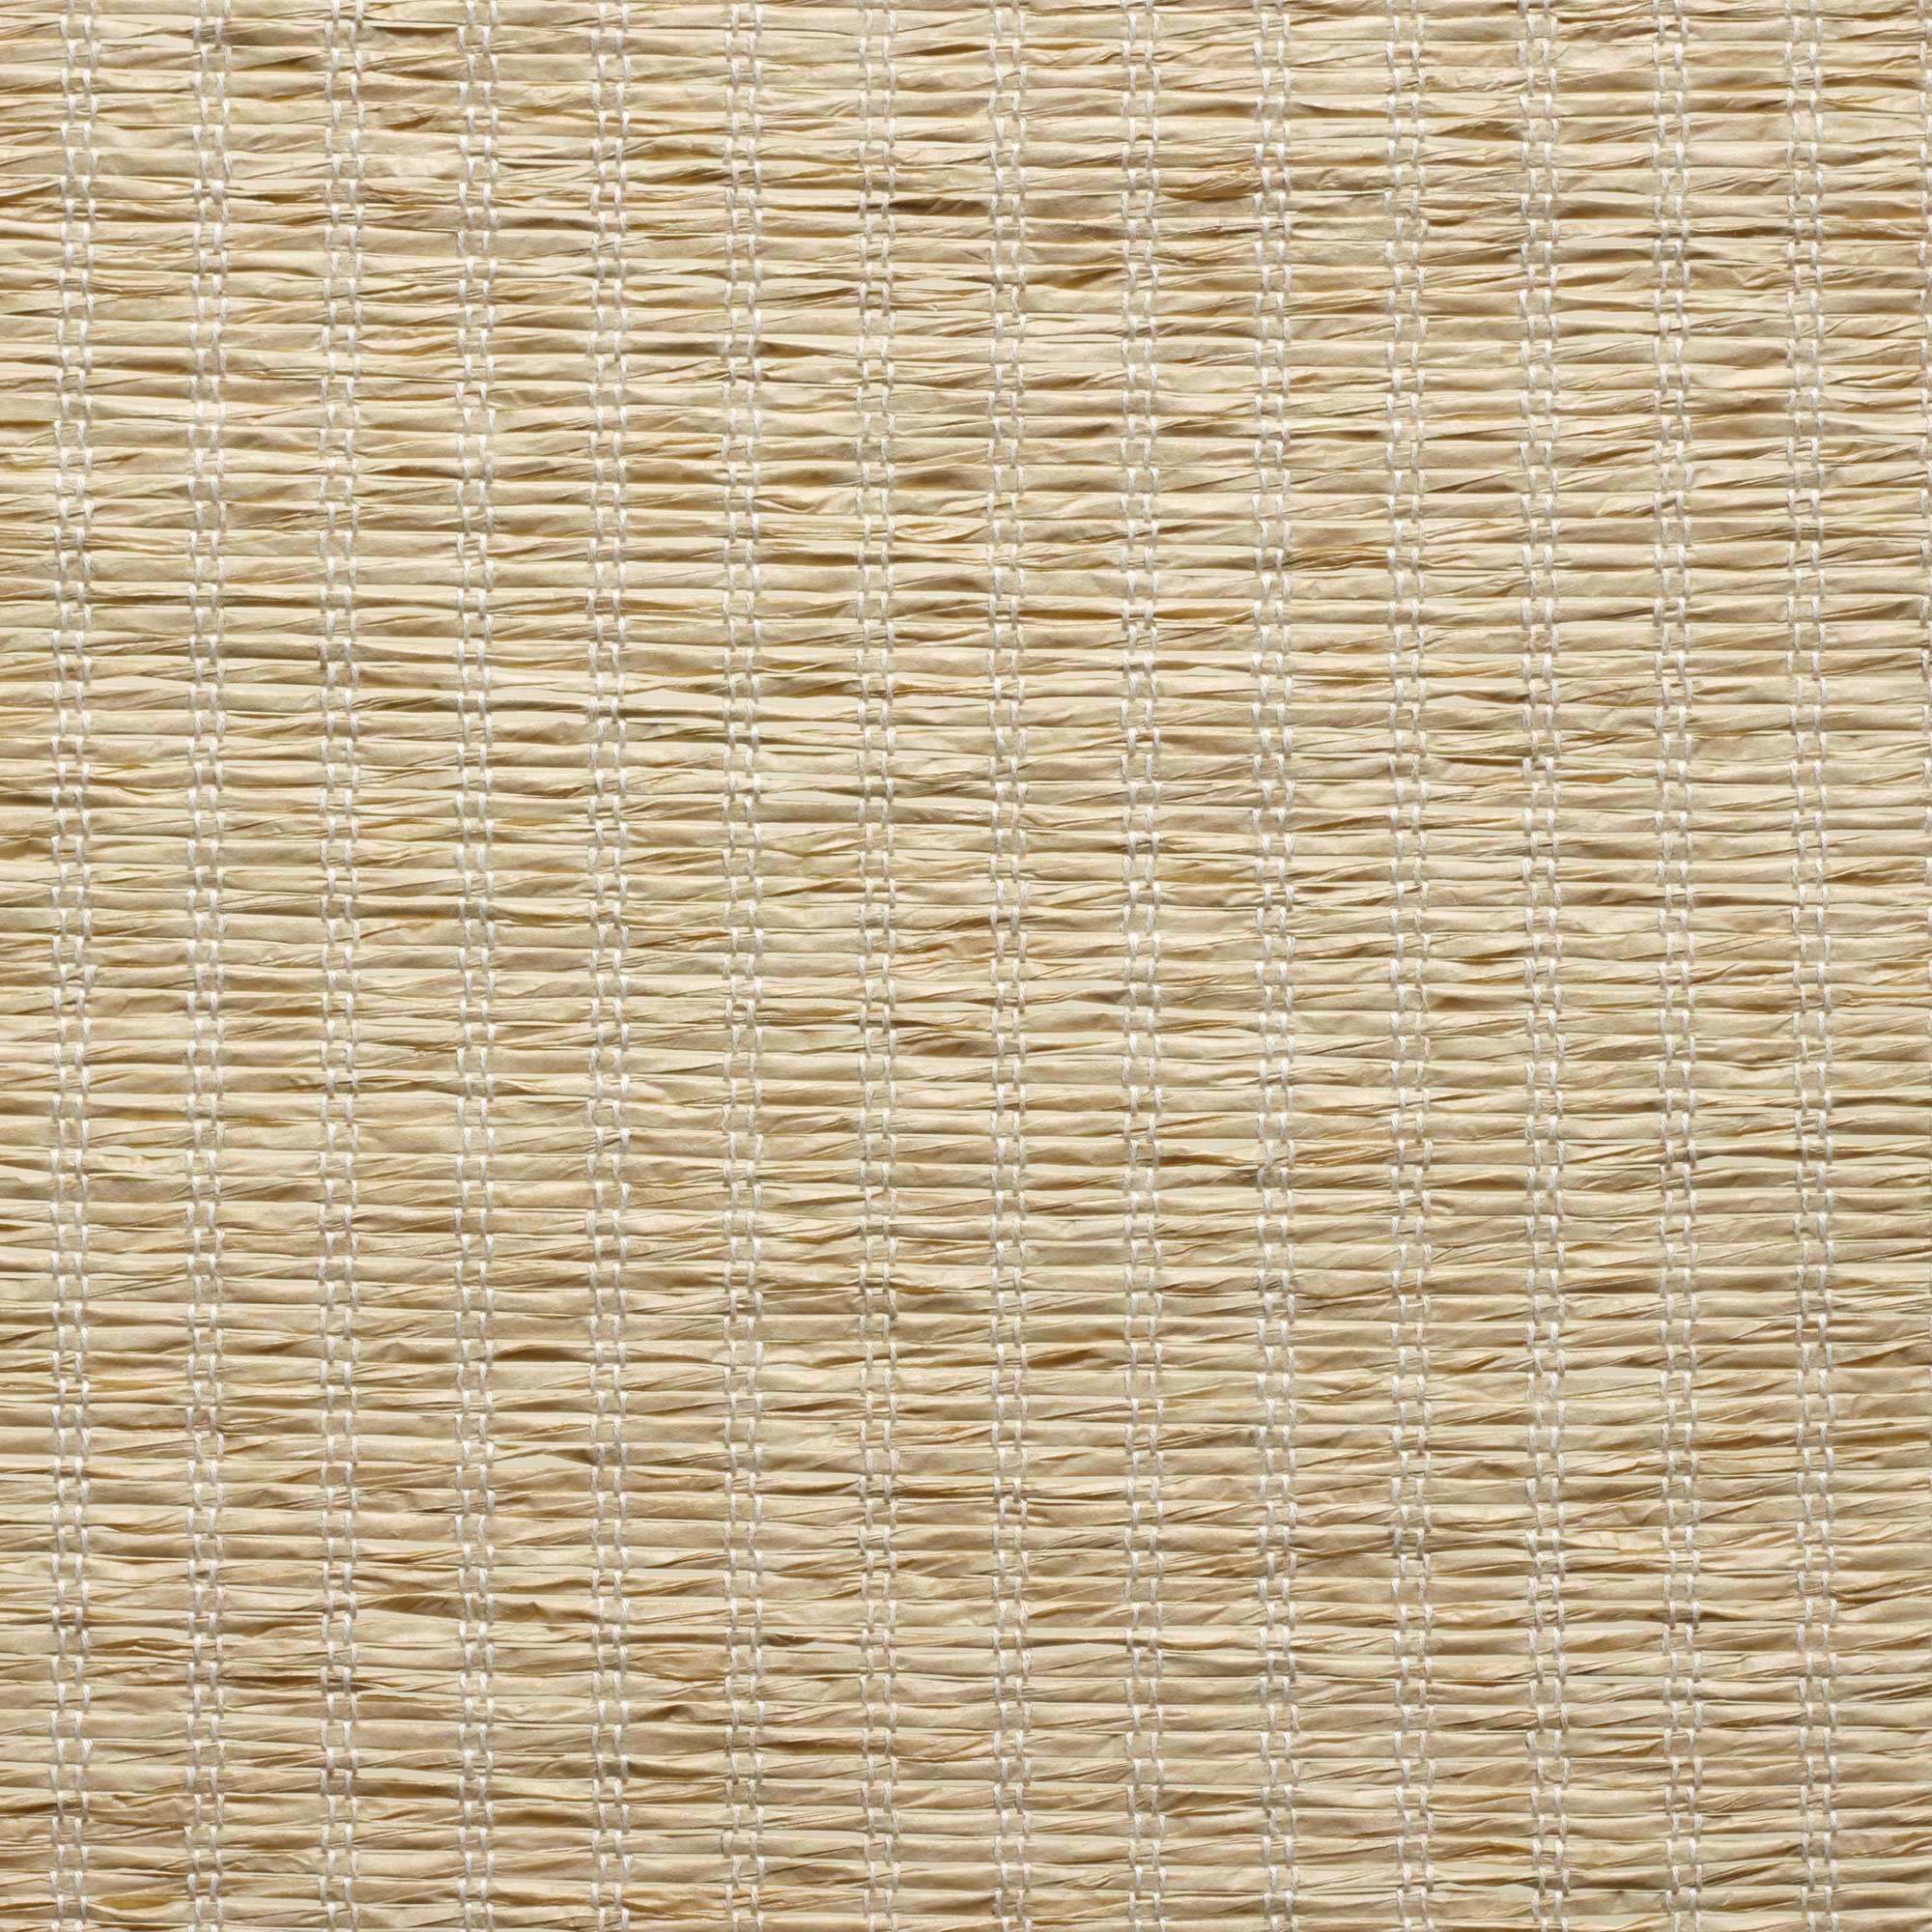 swatch-PE604-09-enlightenment-relaxed-sand-web.jpg